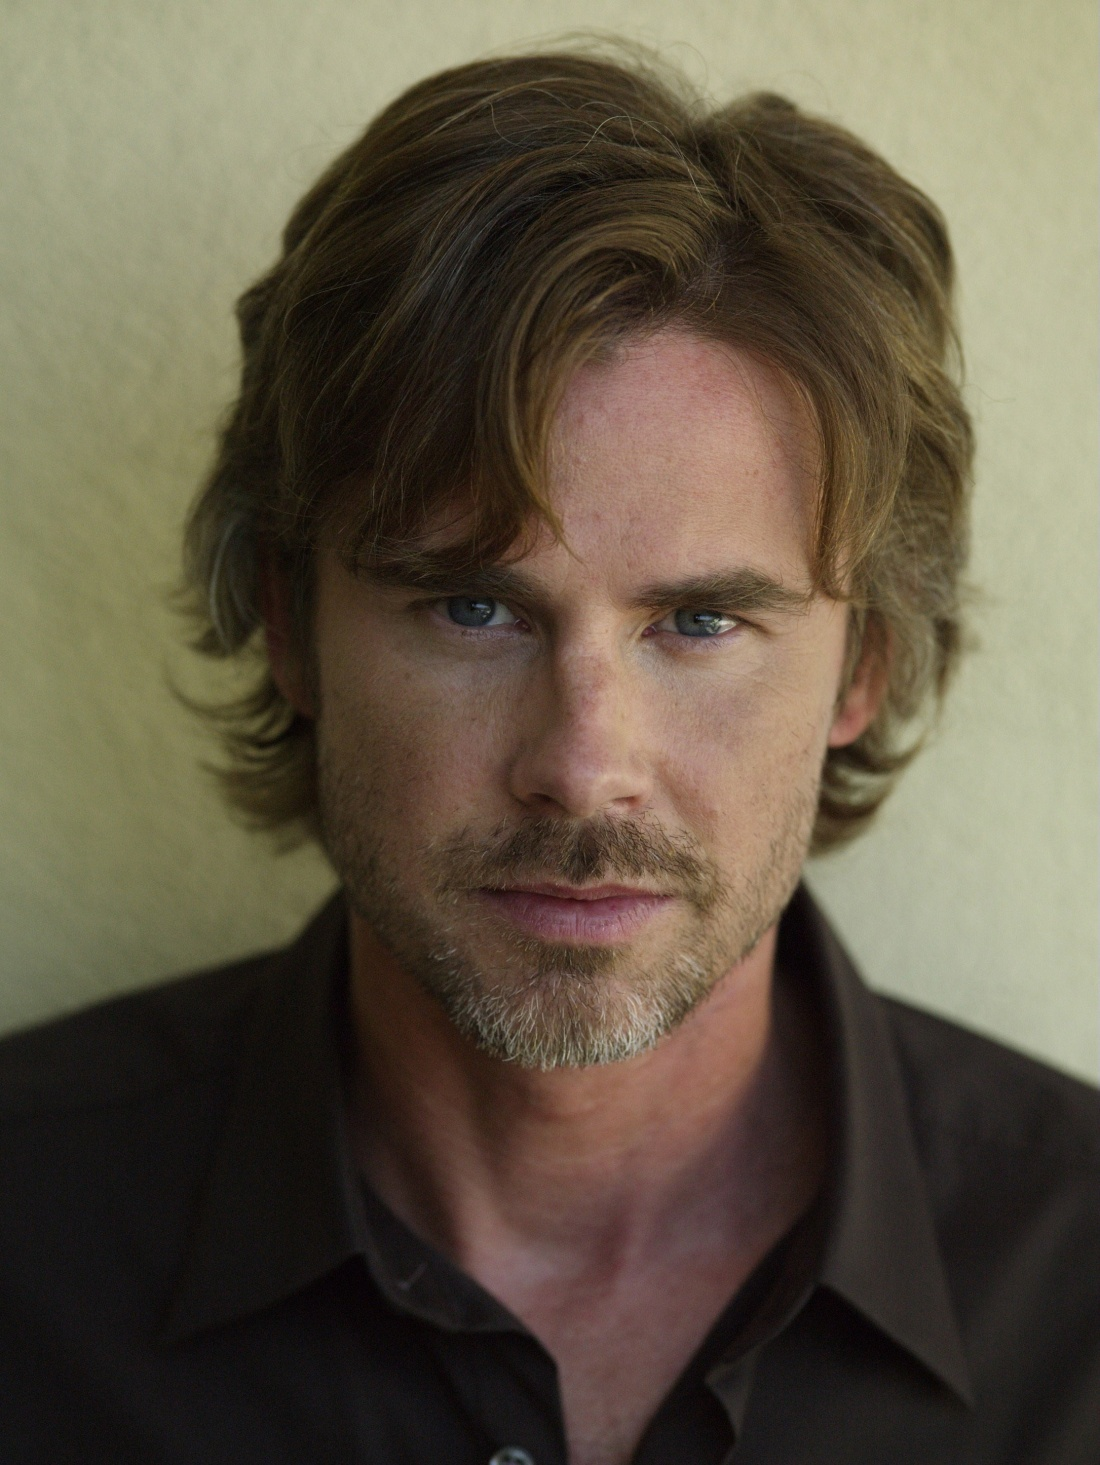 Sam Trammell Photo Shoot - PRIVATE SITE